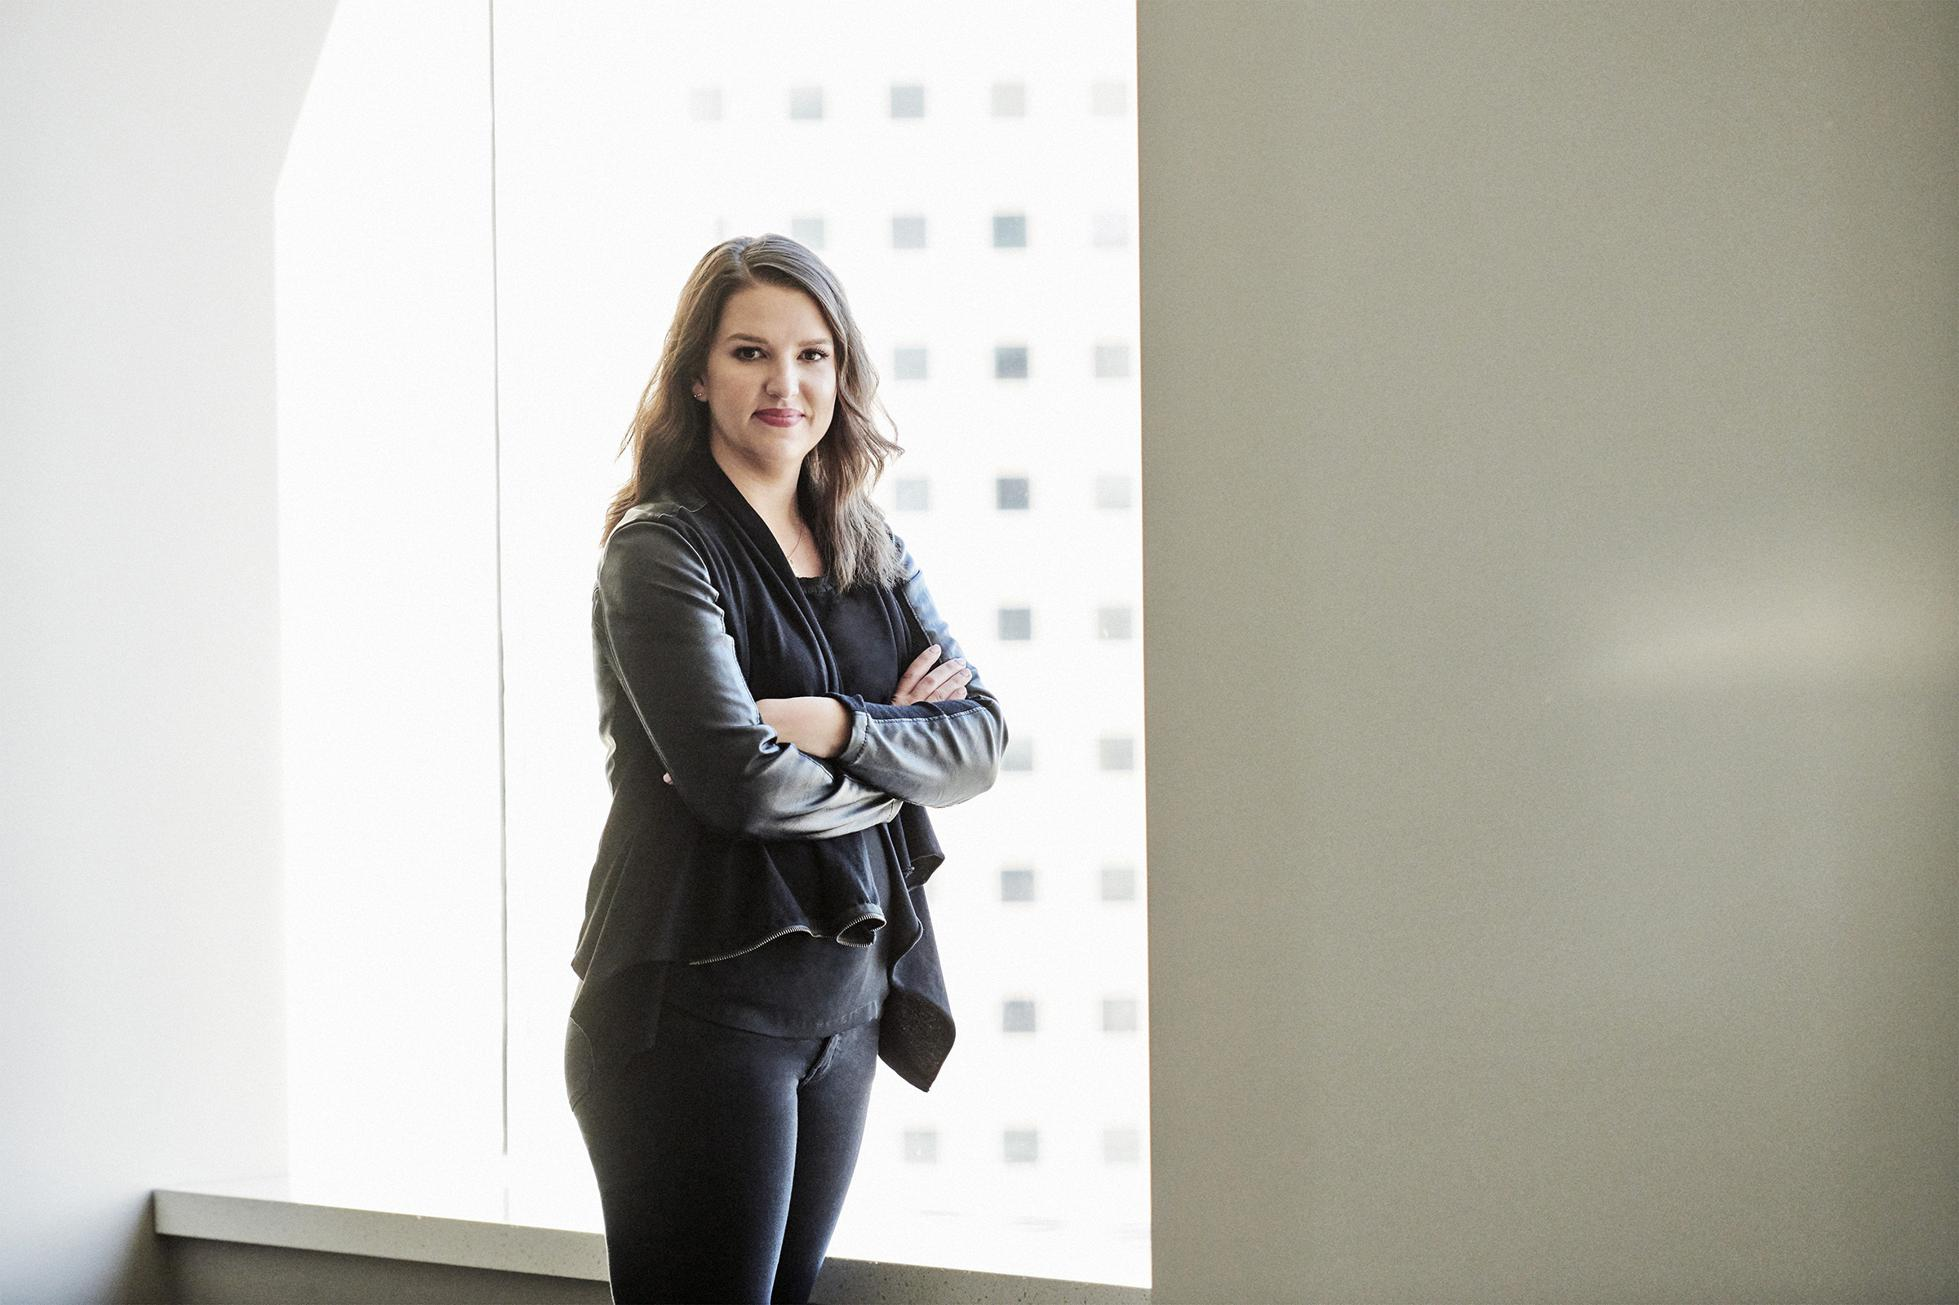 Rachel Carlson of Guild Education photographed by Jamel Toppin for Forbes.